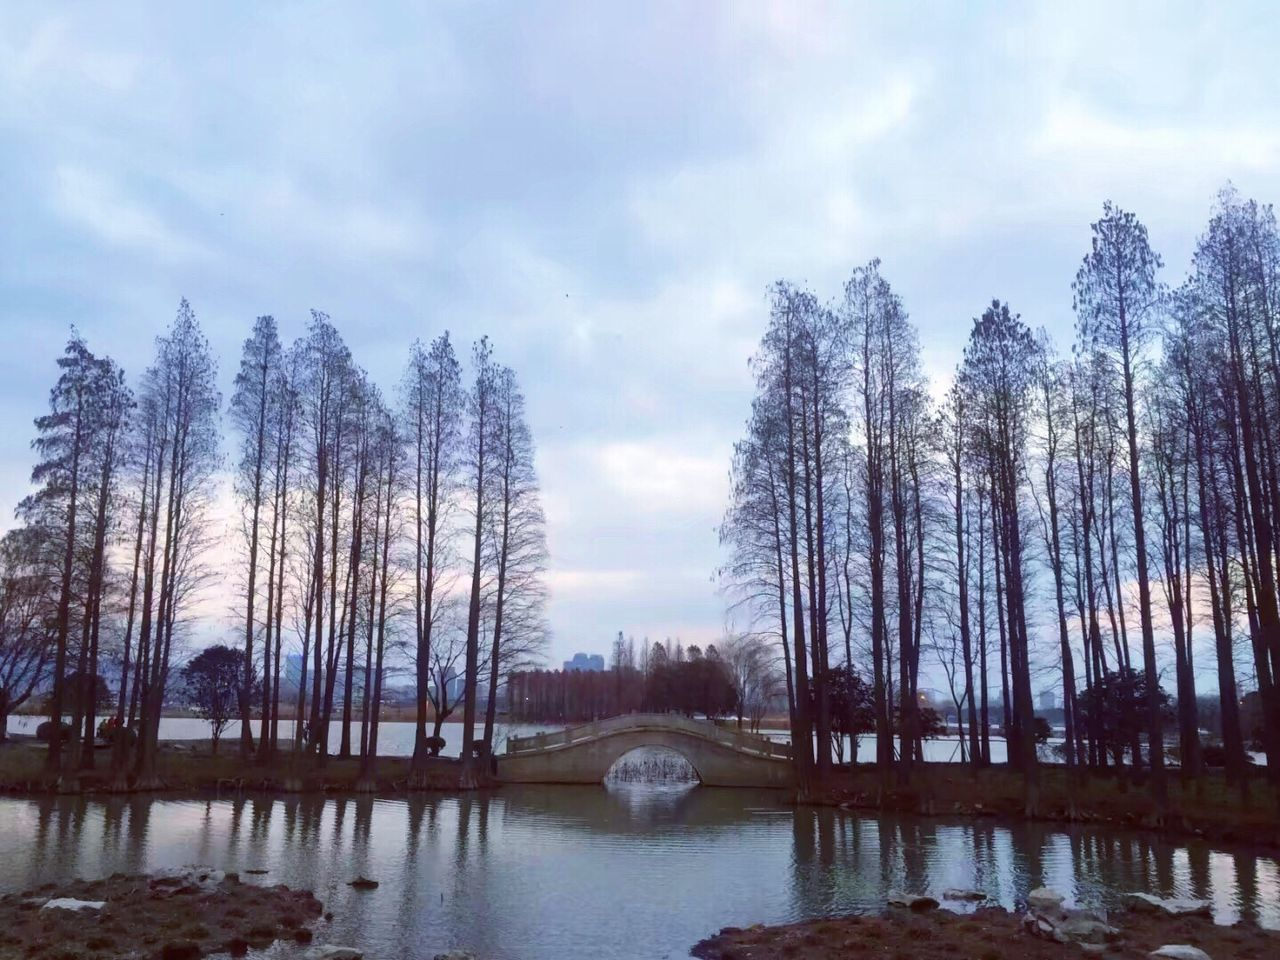 PANORAMIC VIEW OF LAKE WITH TREES IN BACKGROUND